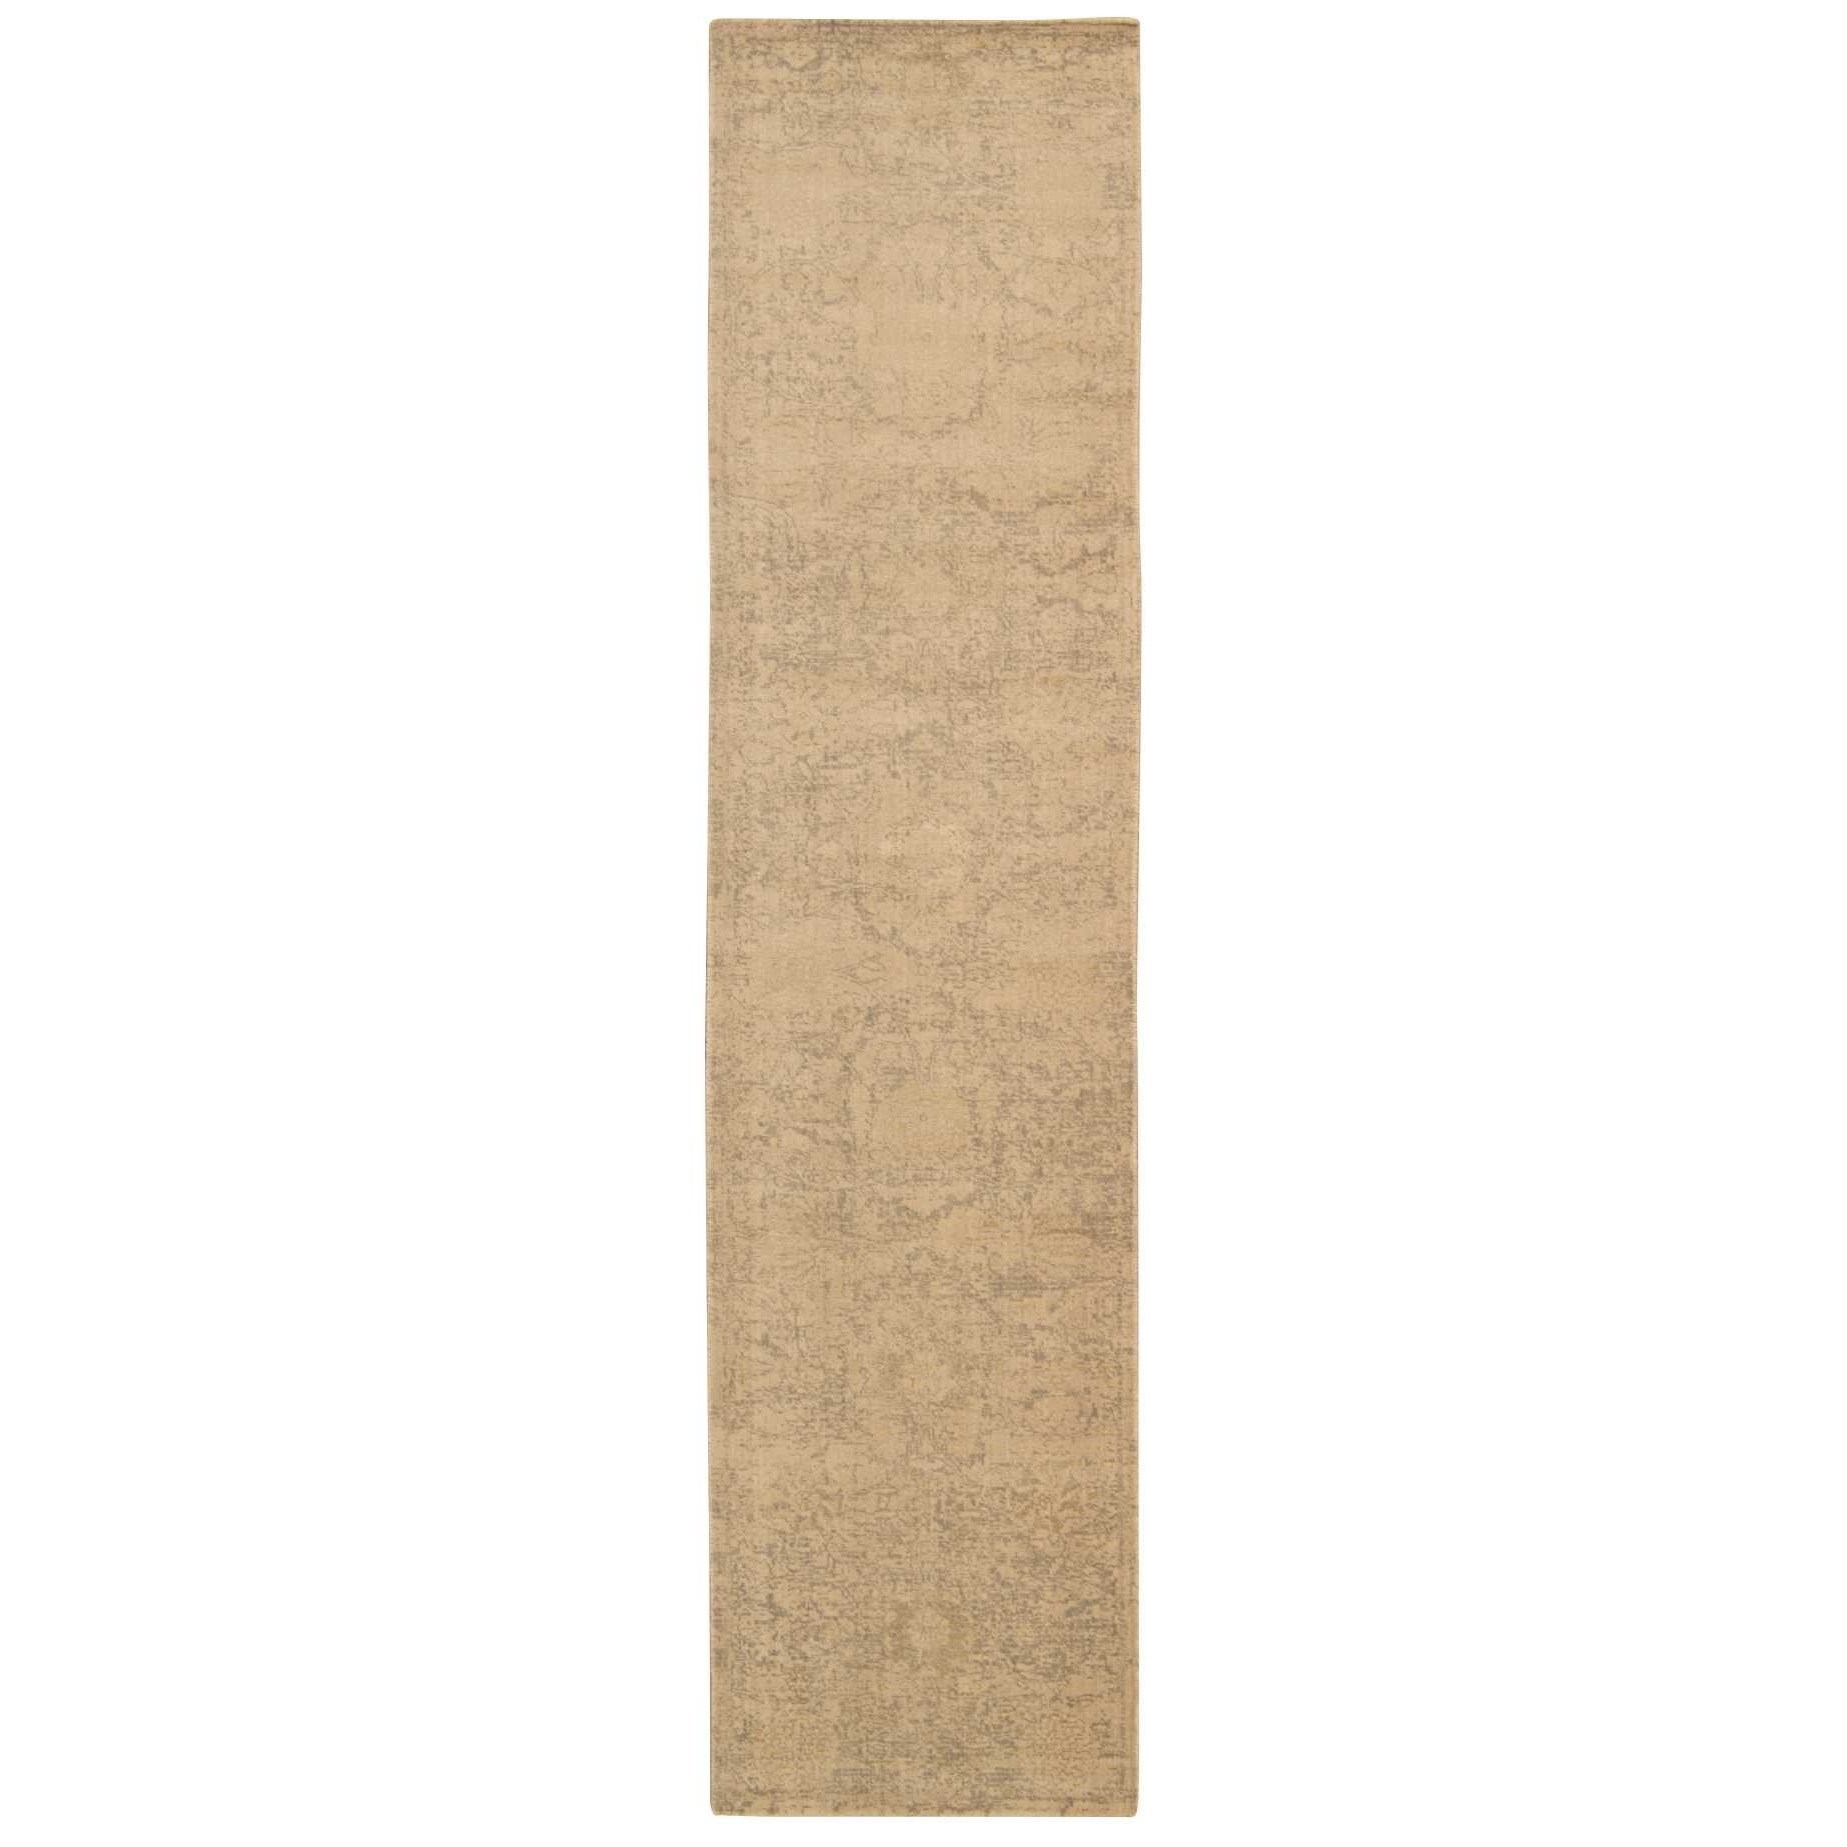 """Silken Allure 2'5"""" x 10' Sand Runner Rug by Nourison at Home Collections Furniture"""